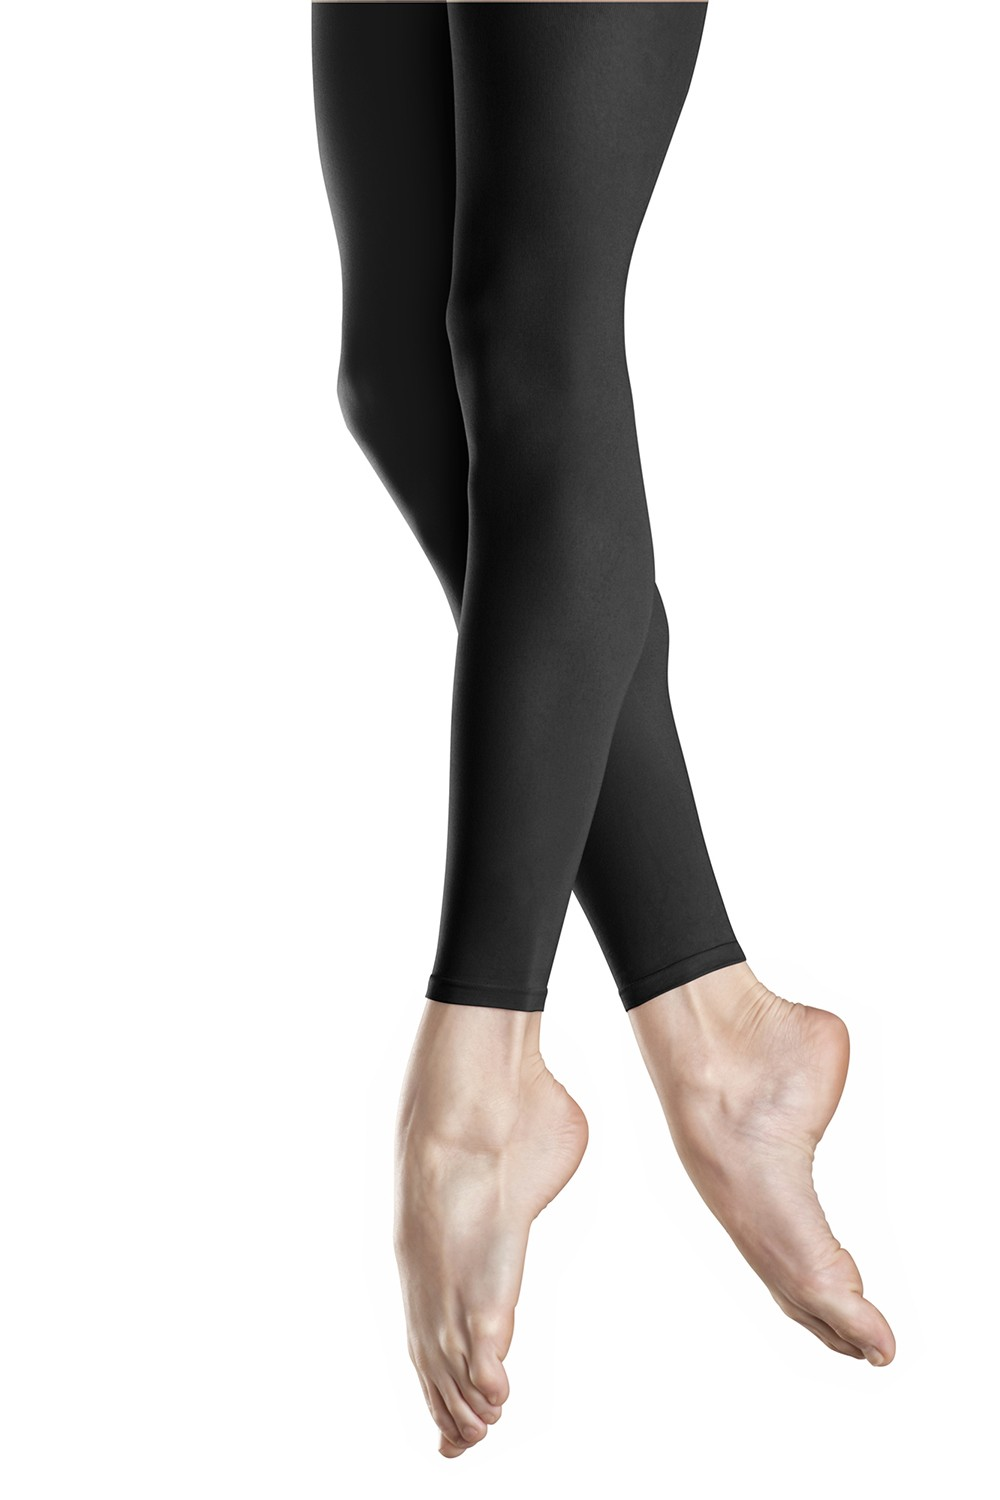 Collant Senza Piede Endura Bambina Children's Dance Tights